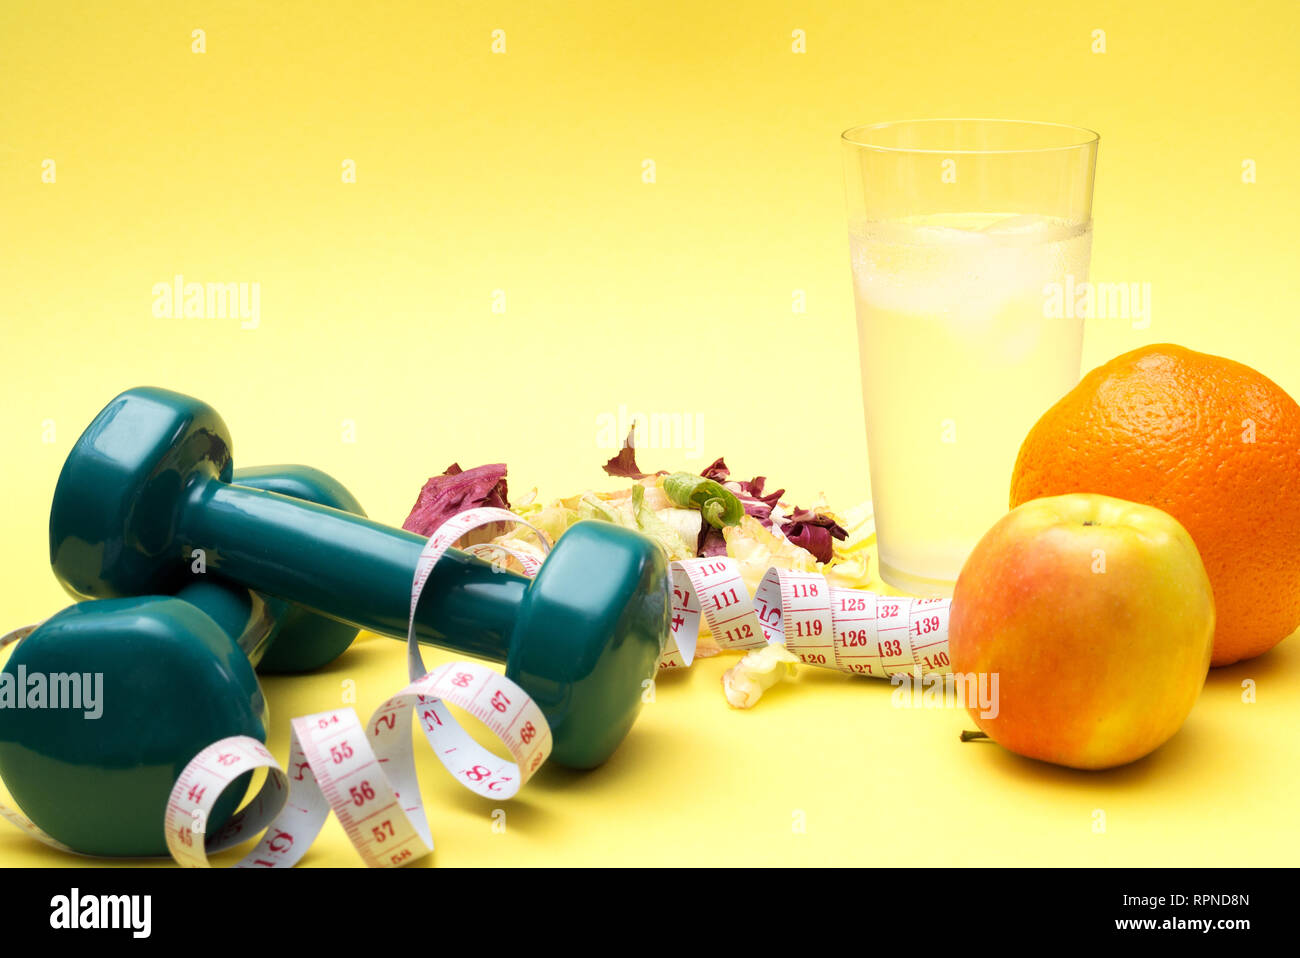 Dumbbells for sports. Fitness salad and tape measure on a yellow table. Oranges, apples and clear water with ice for the concept of a healthy lifestyl - Stock Image